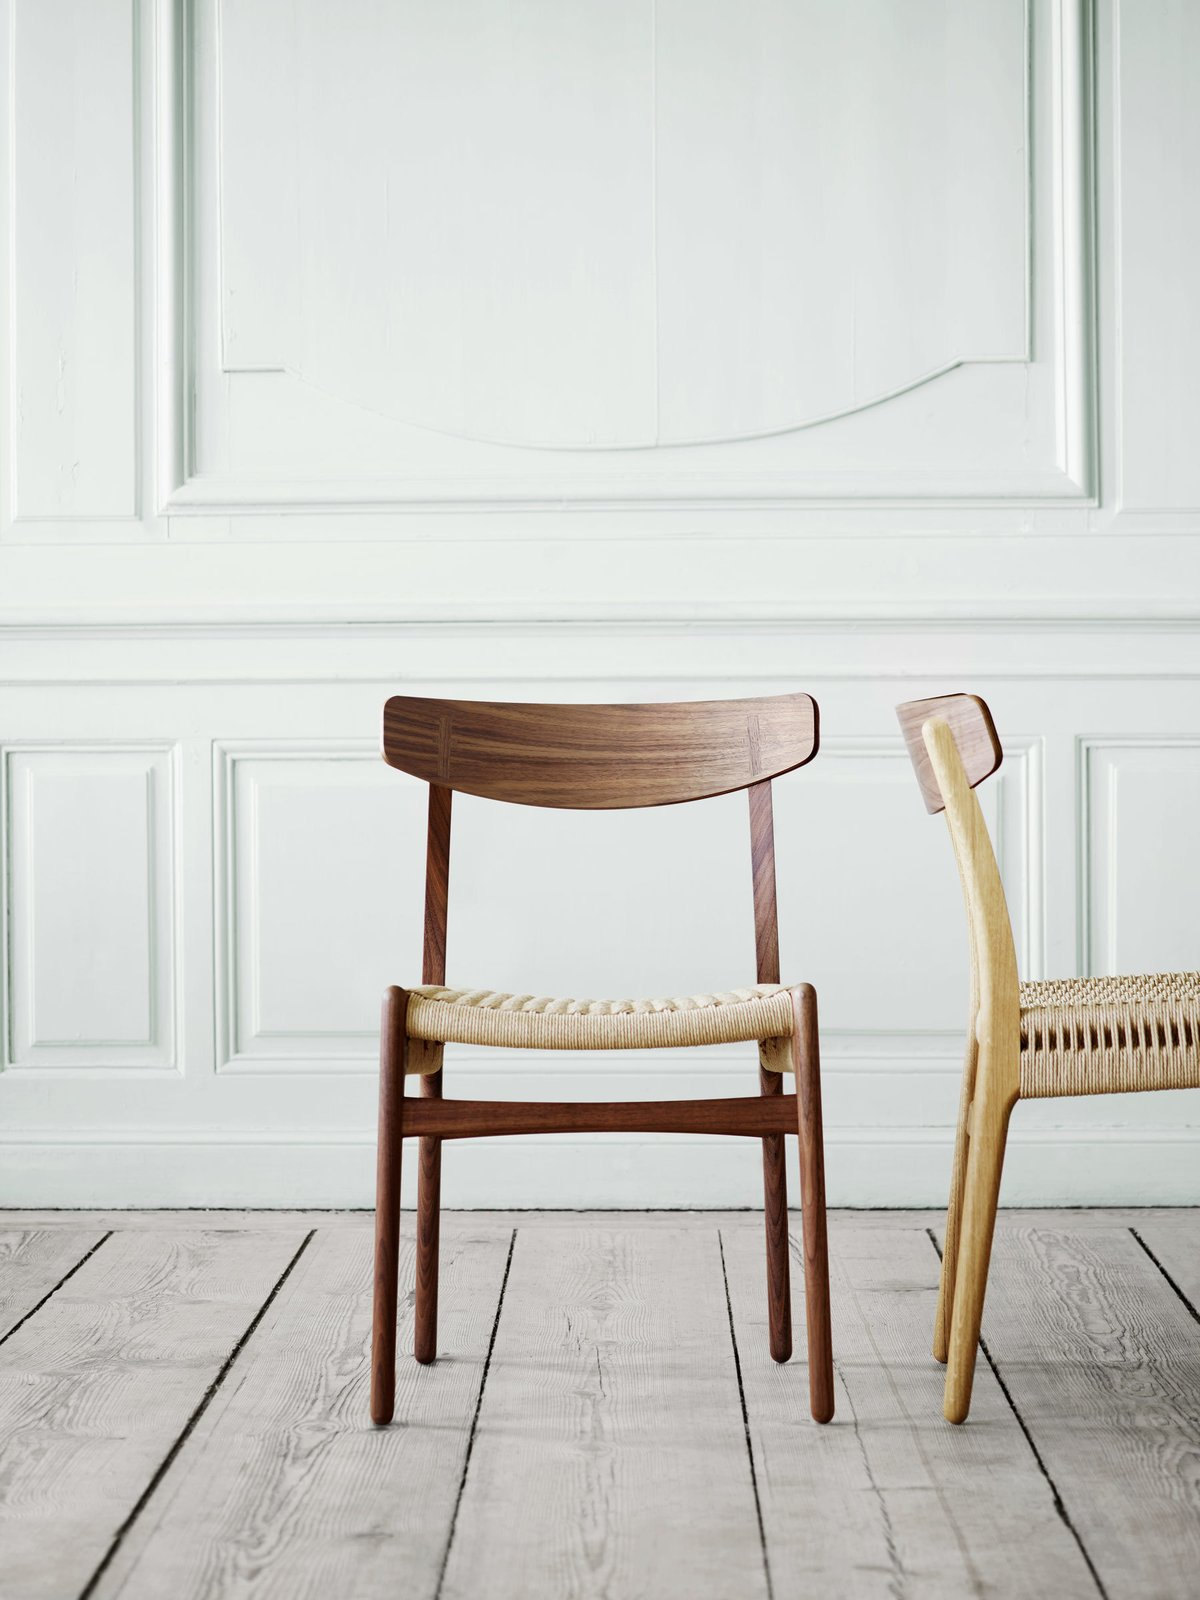 Photo 5 of 7 in CH23 And CH22 Chairs By Hans J. Wegner